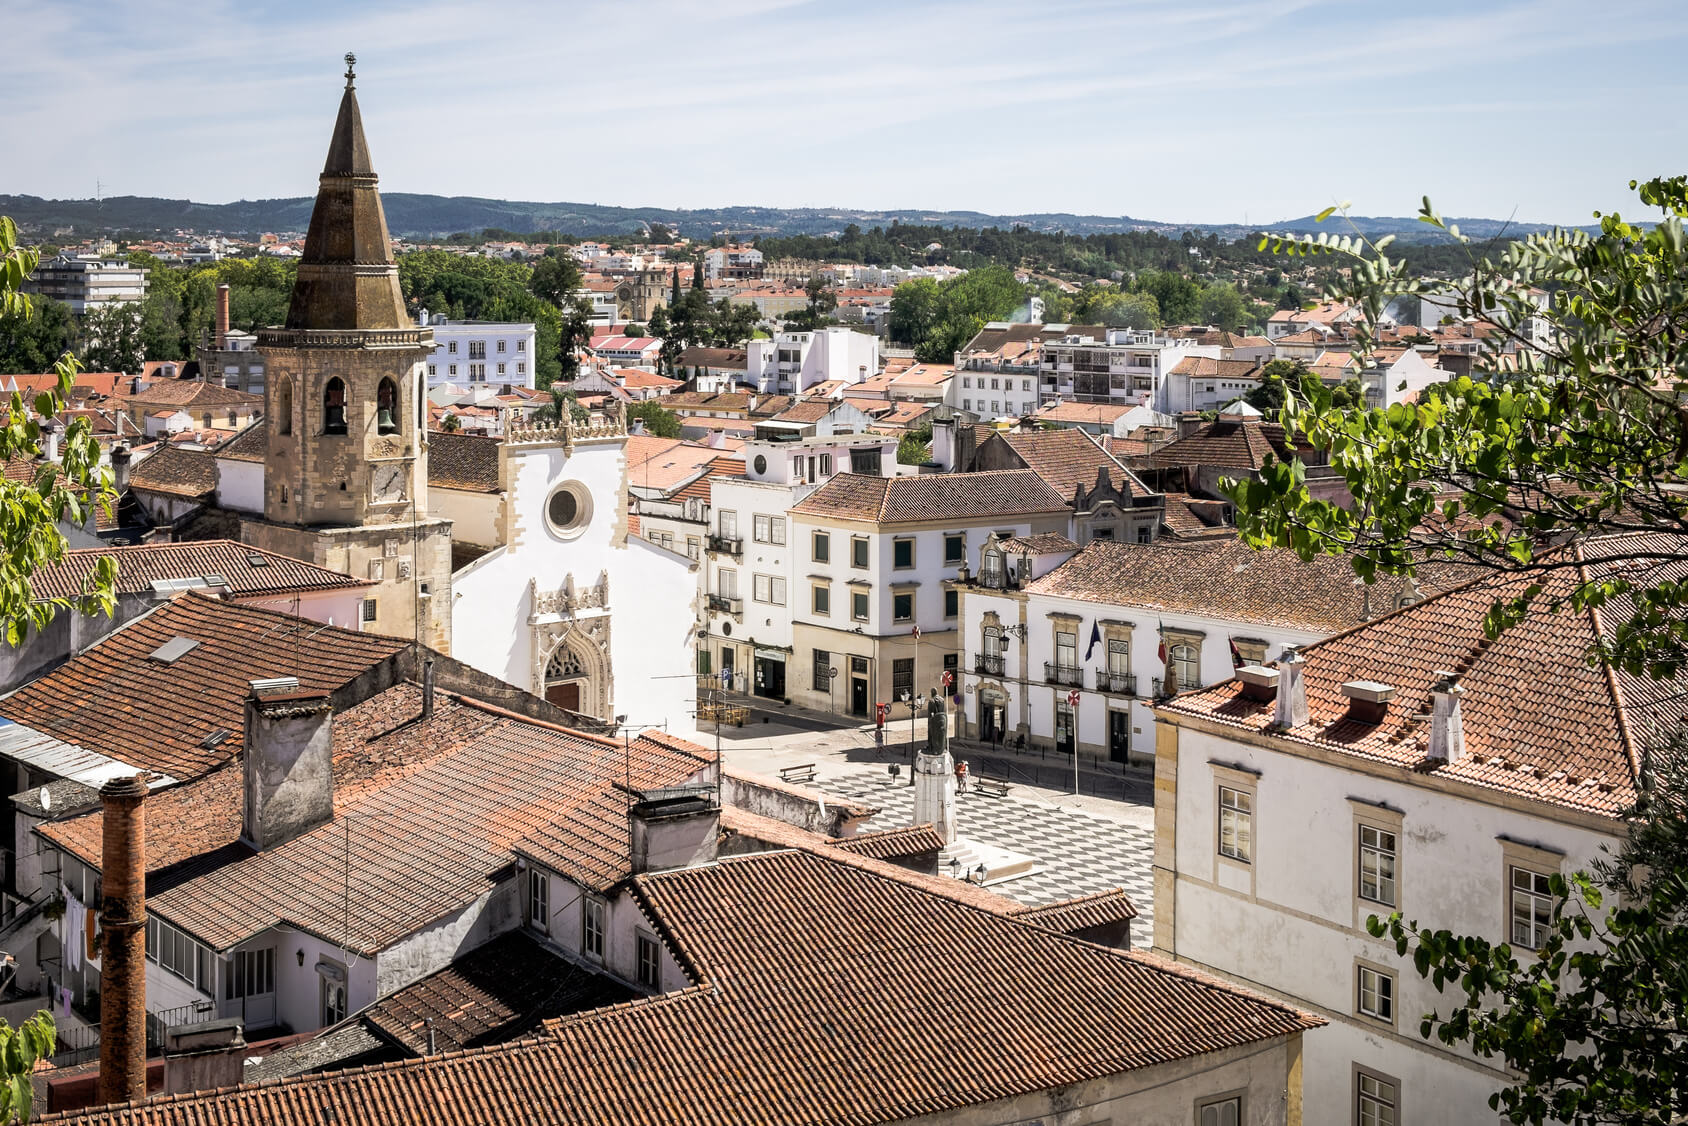 6 Days in Portugal Circuit: Places to Visit